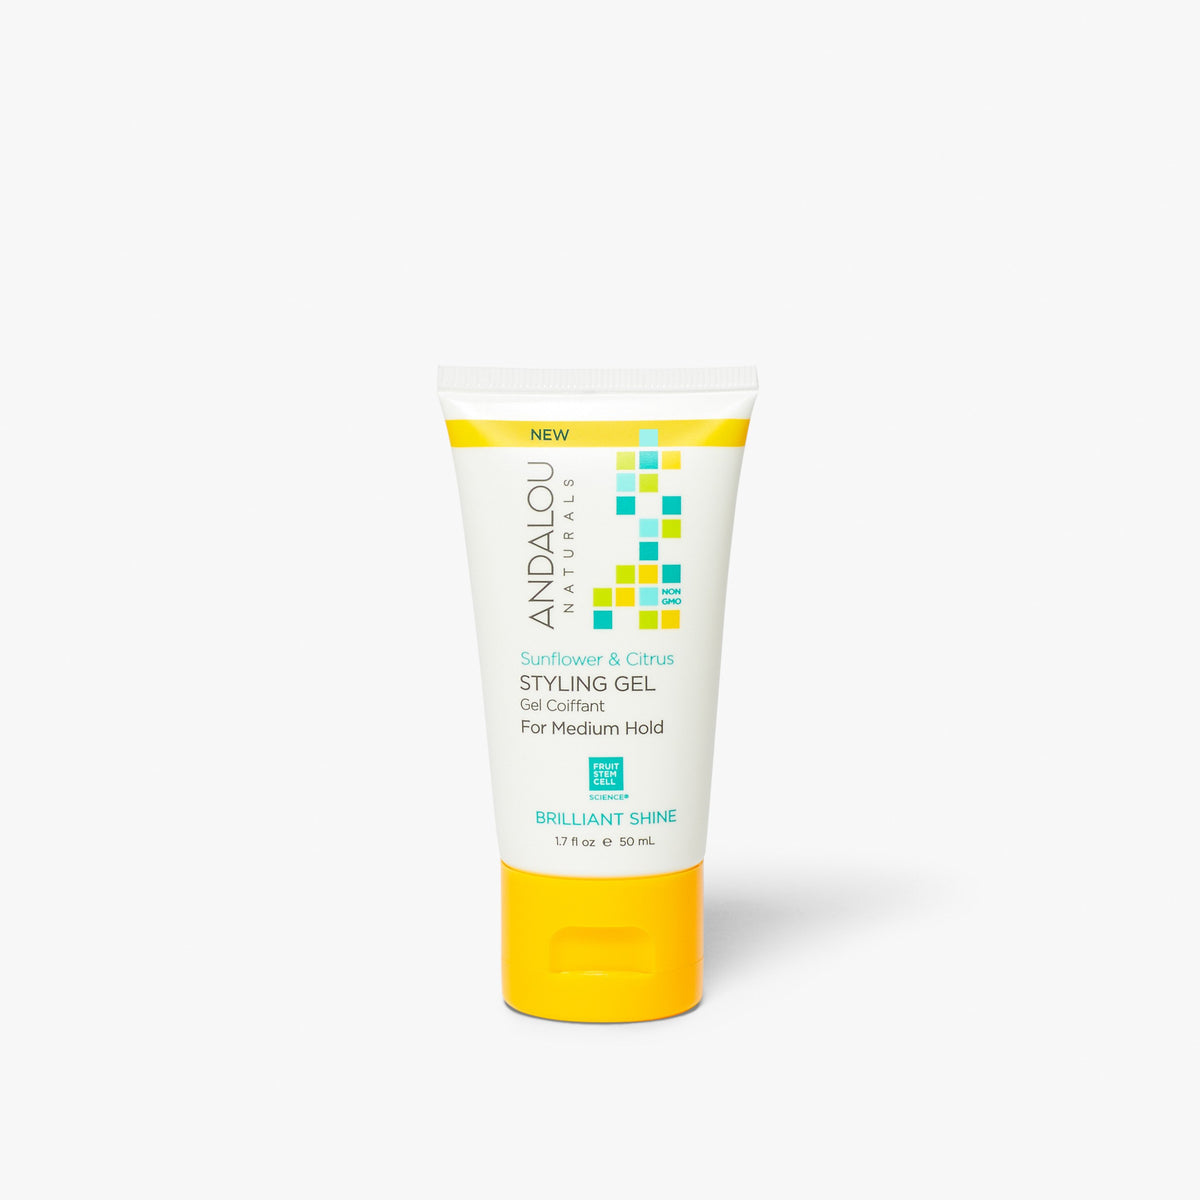 Sunflower & Citrus Brilliant Shine Styling Gel | Trial Size